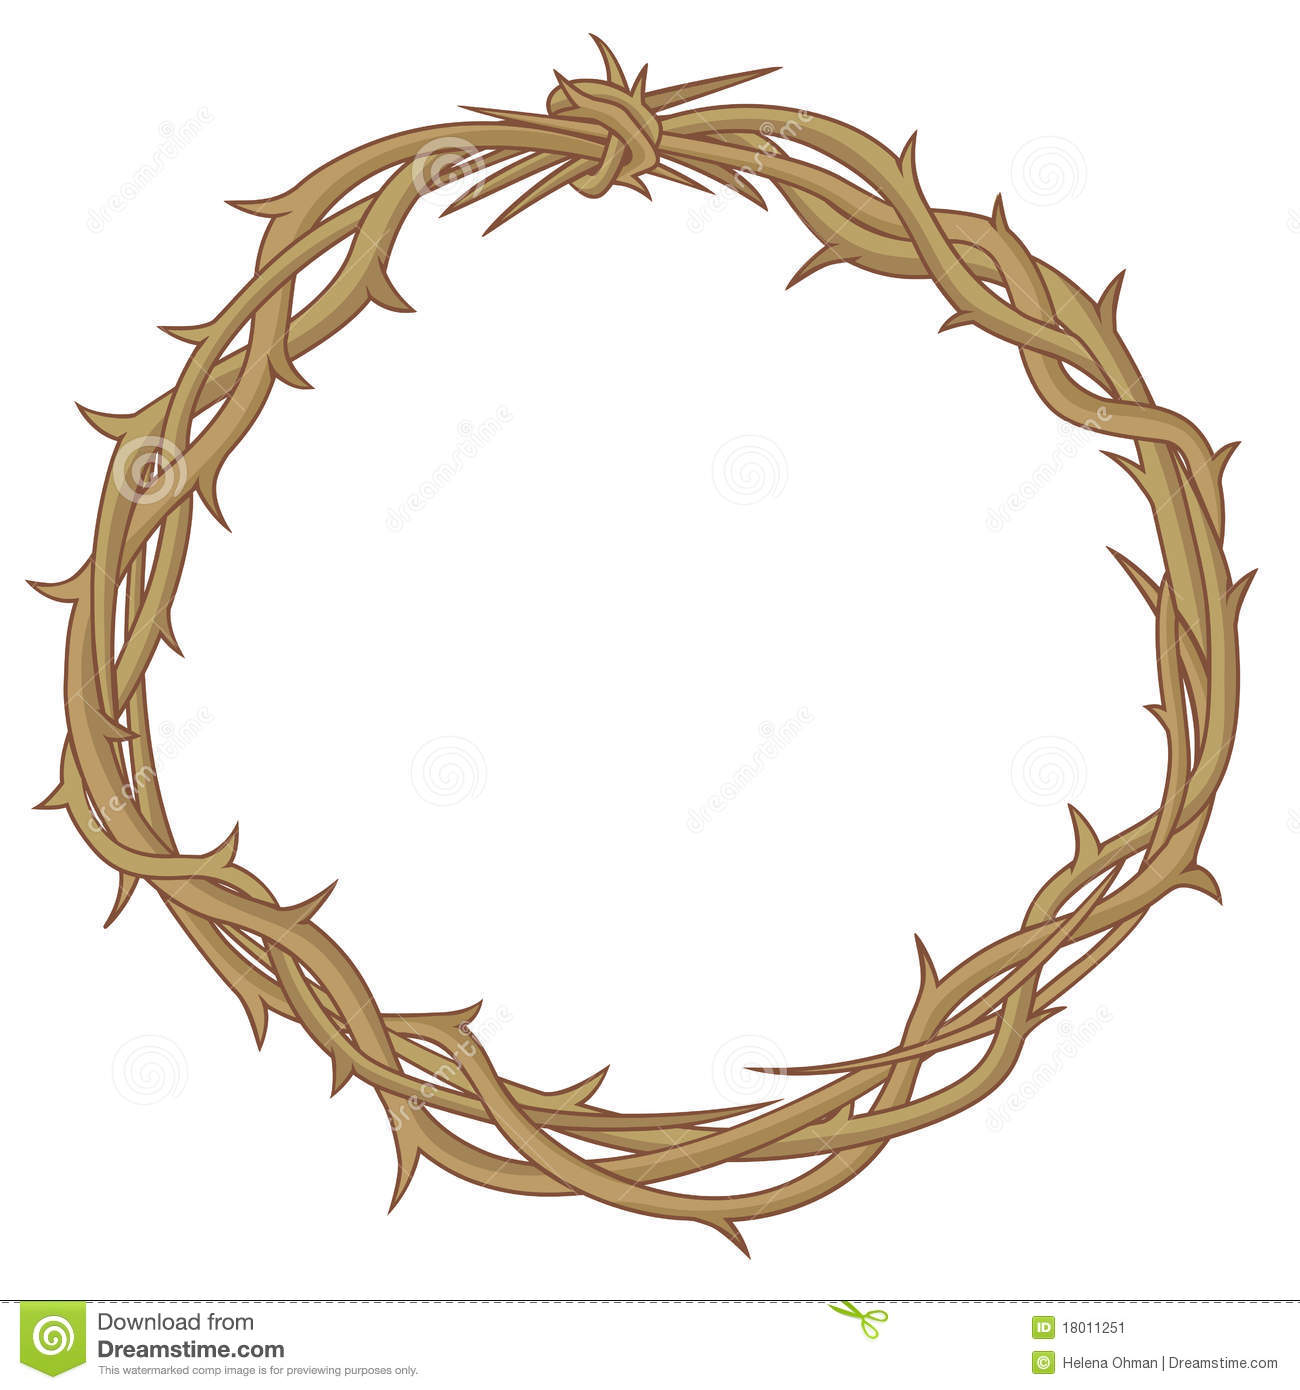 crown of thorns stock vector illustration of colored Crown of Thorns Clip Art Crown of Thorns Silhouette